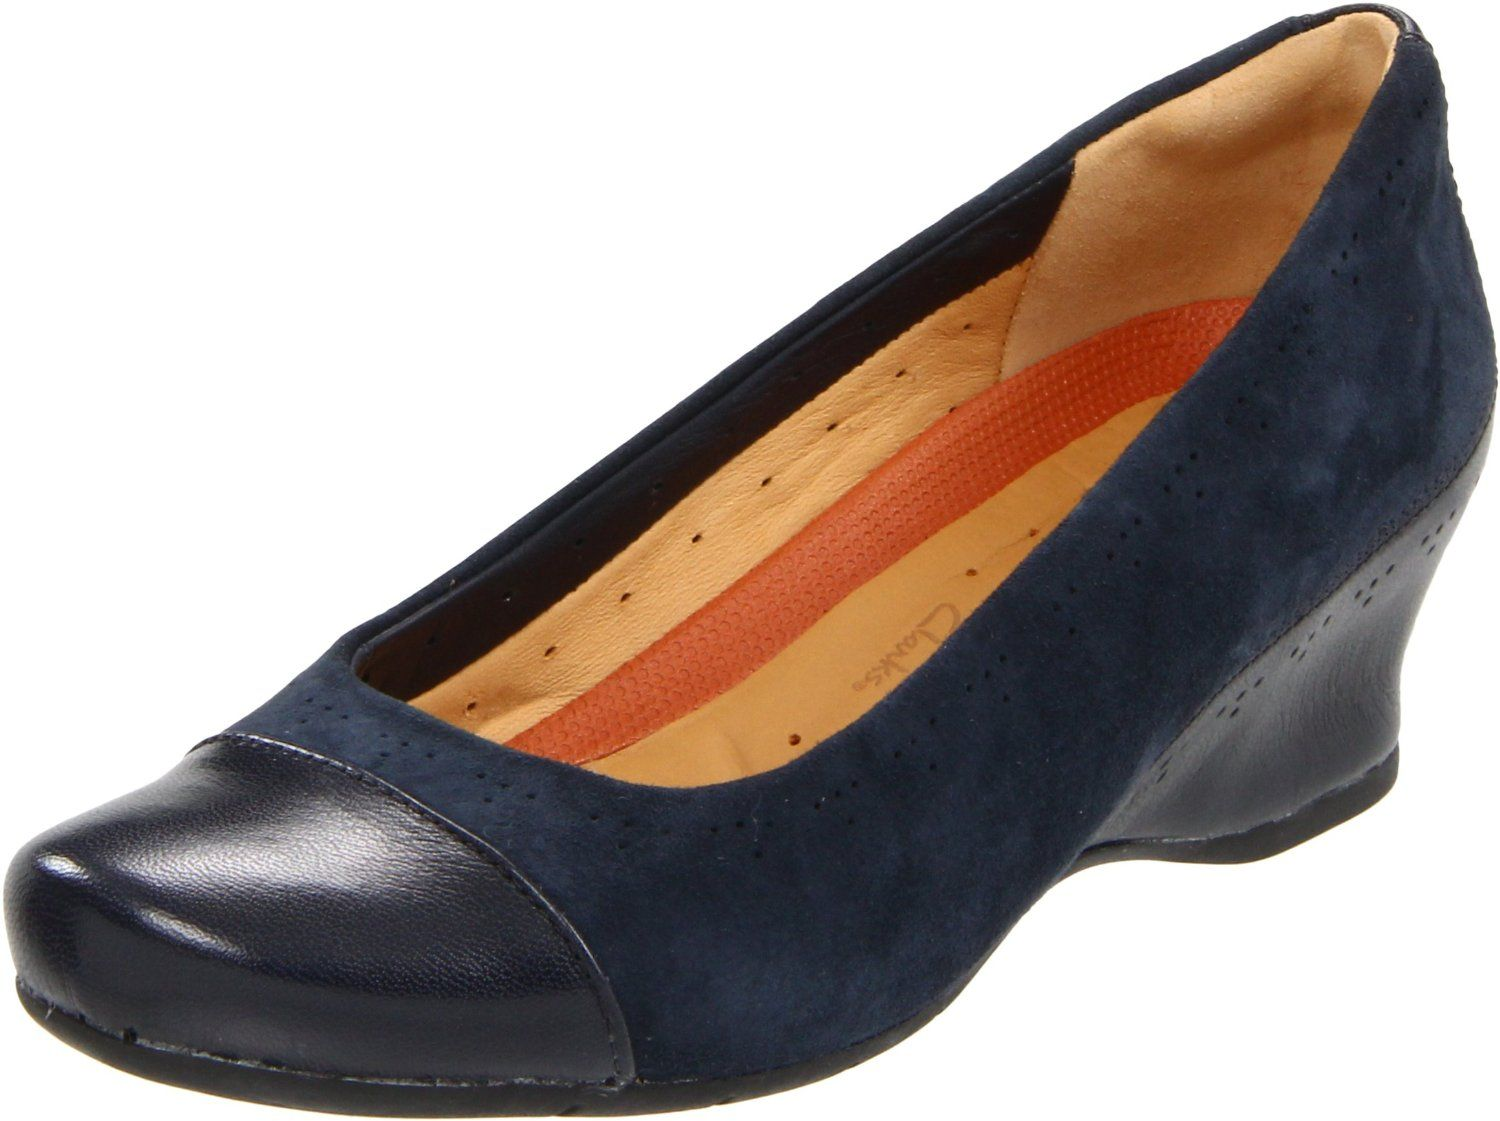 Clarks Women's Un.Conditional Pump, (shoes, clarks, comfort shoes, wide  shoes, womens shoes, clarks shoes, comfortable)